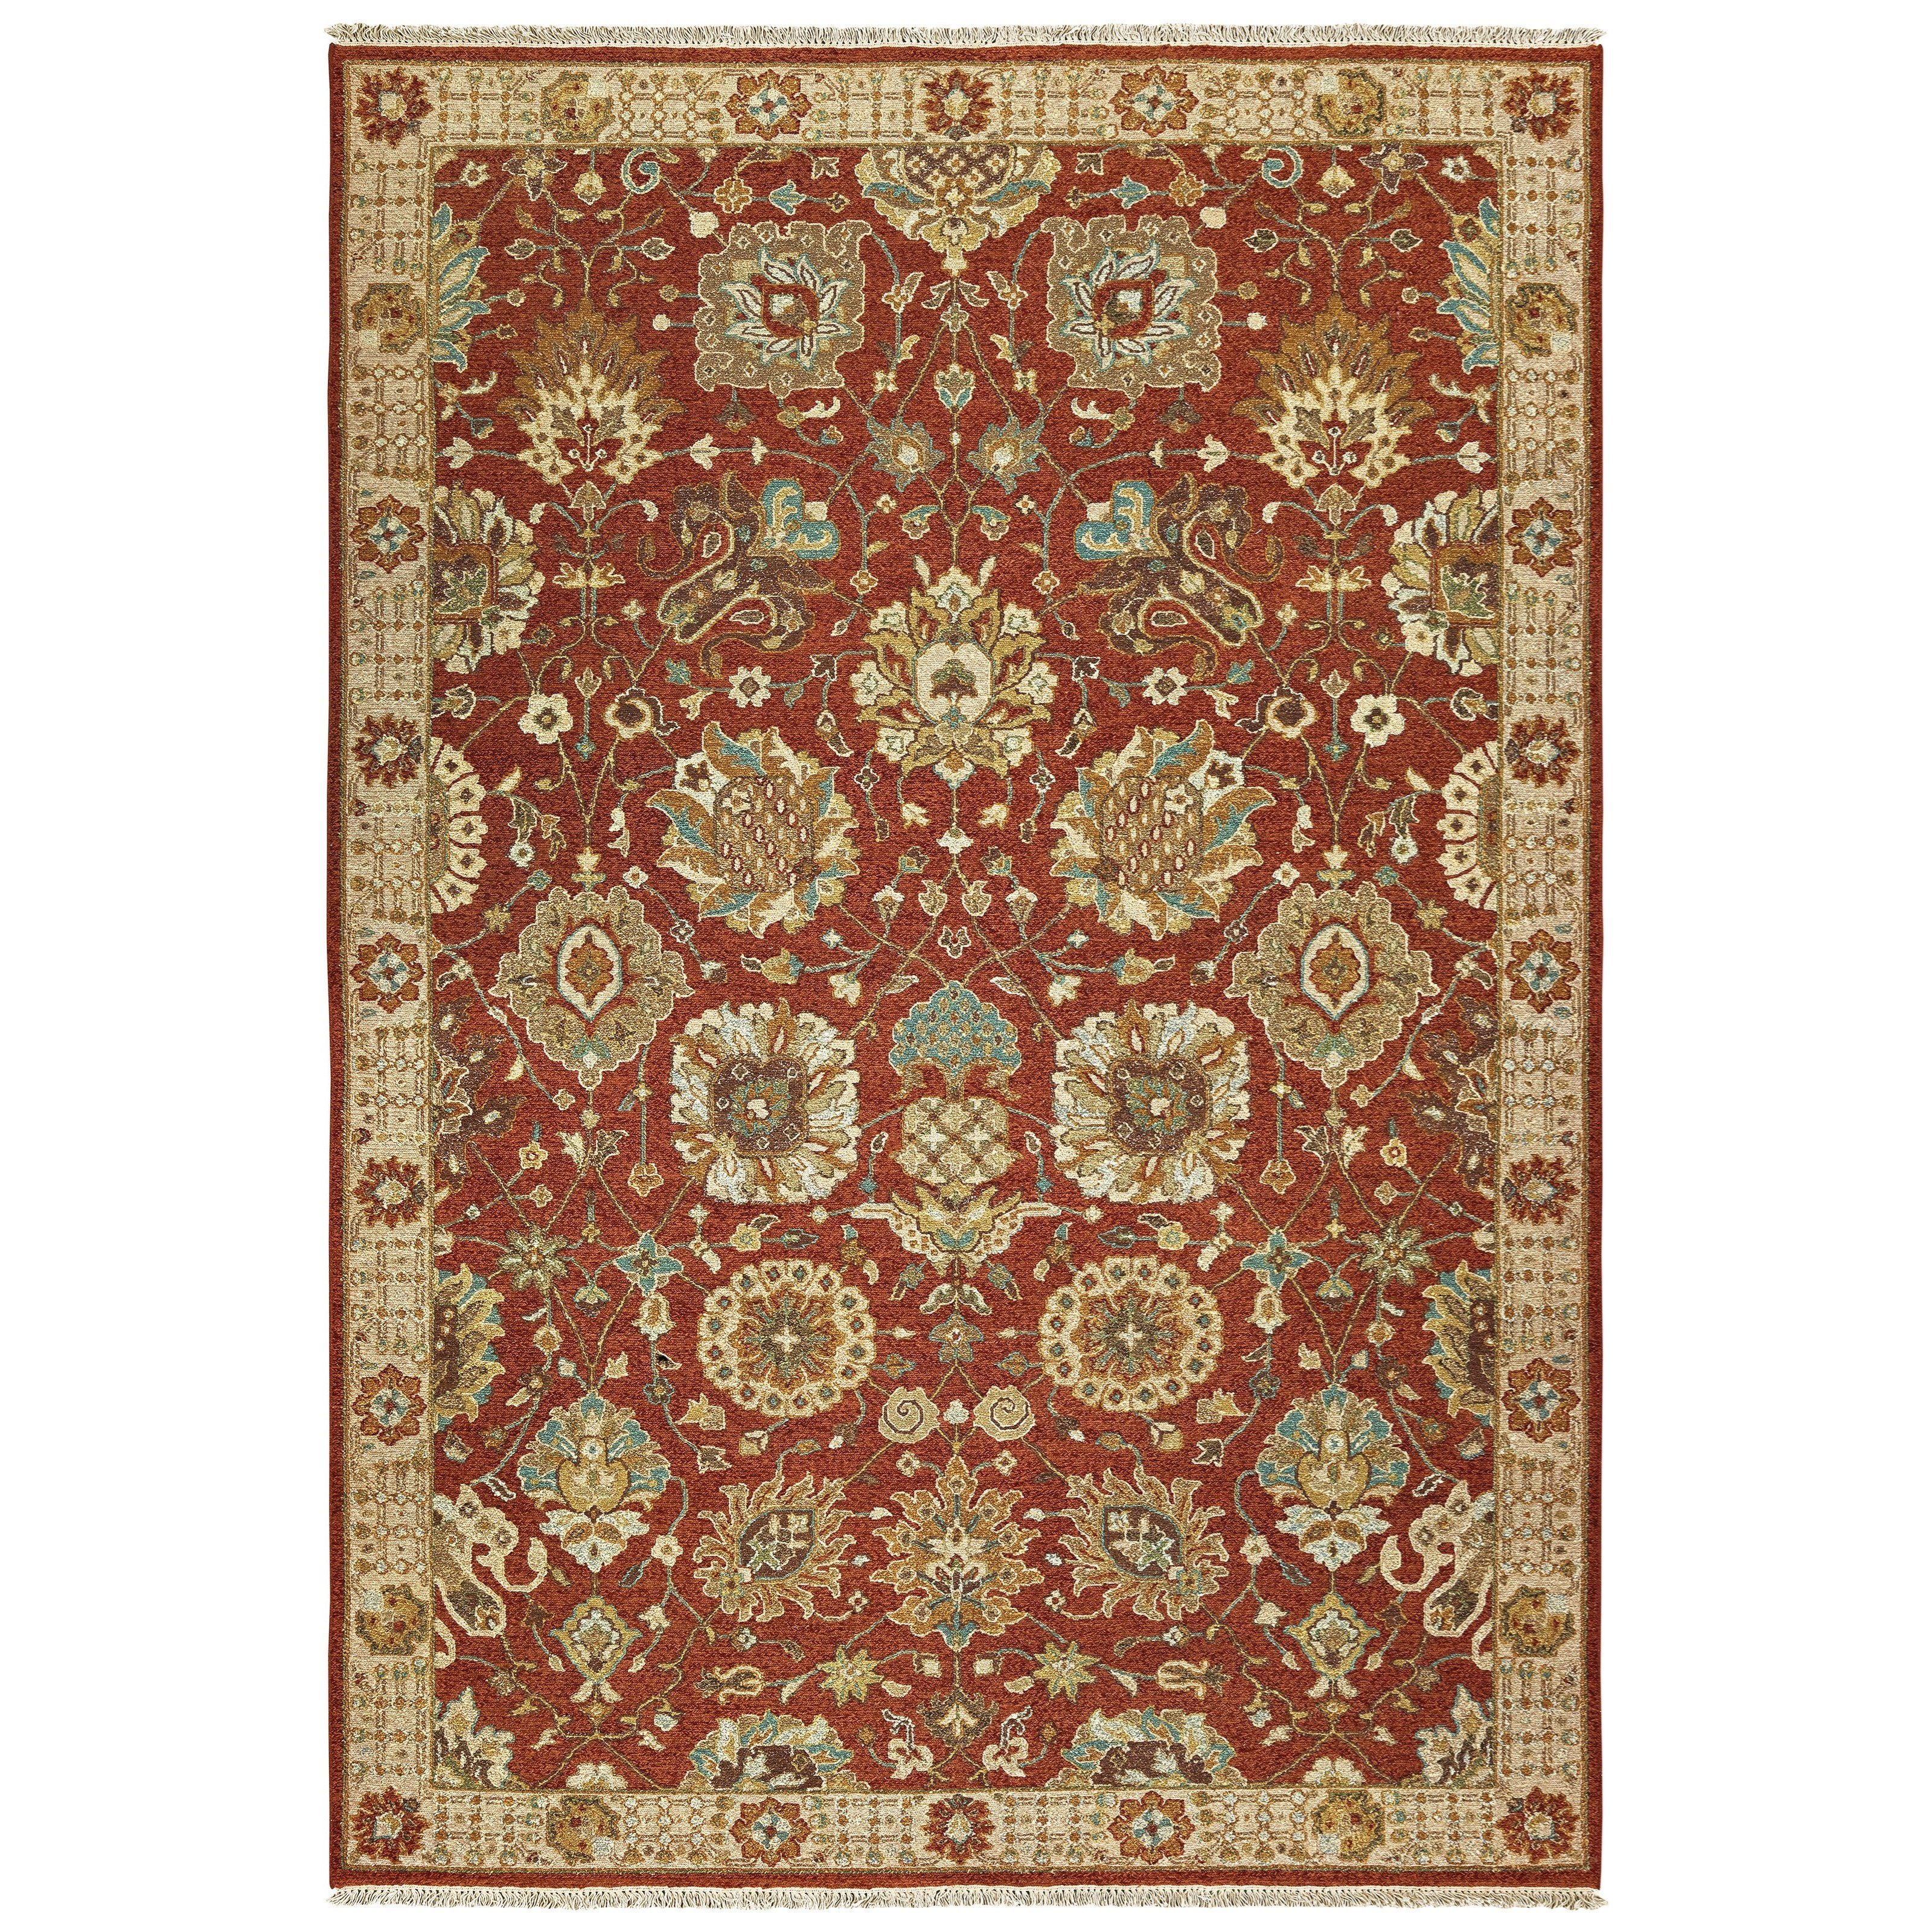 Angora 8' X 10' Rectangle Rug by Oriental Weavers at Steger's Furniture